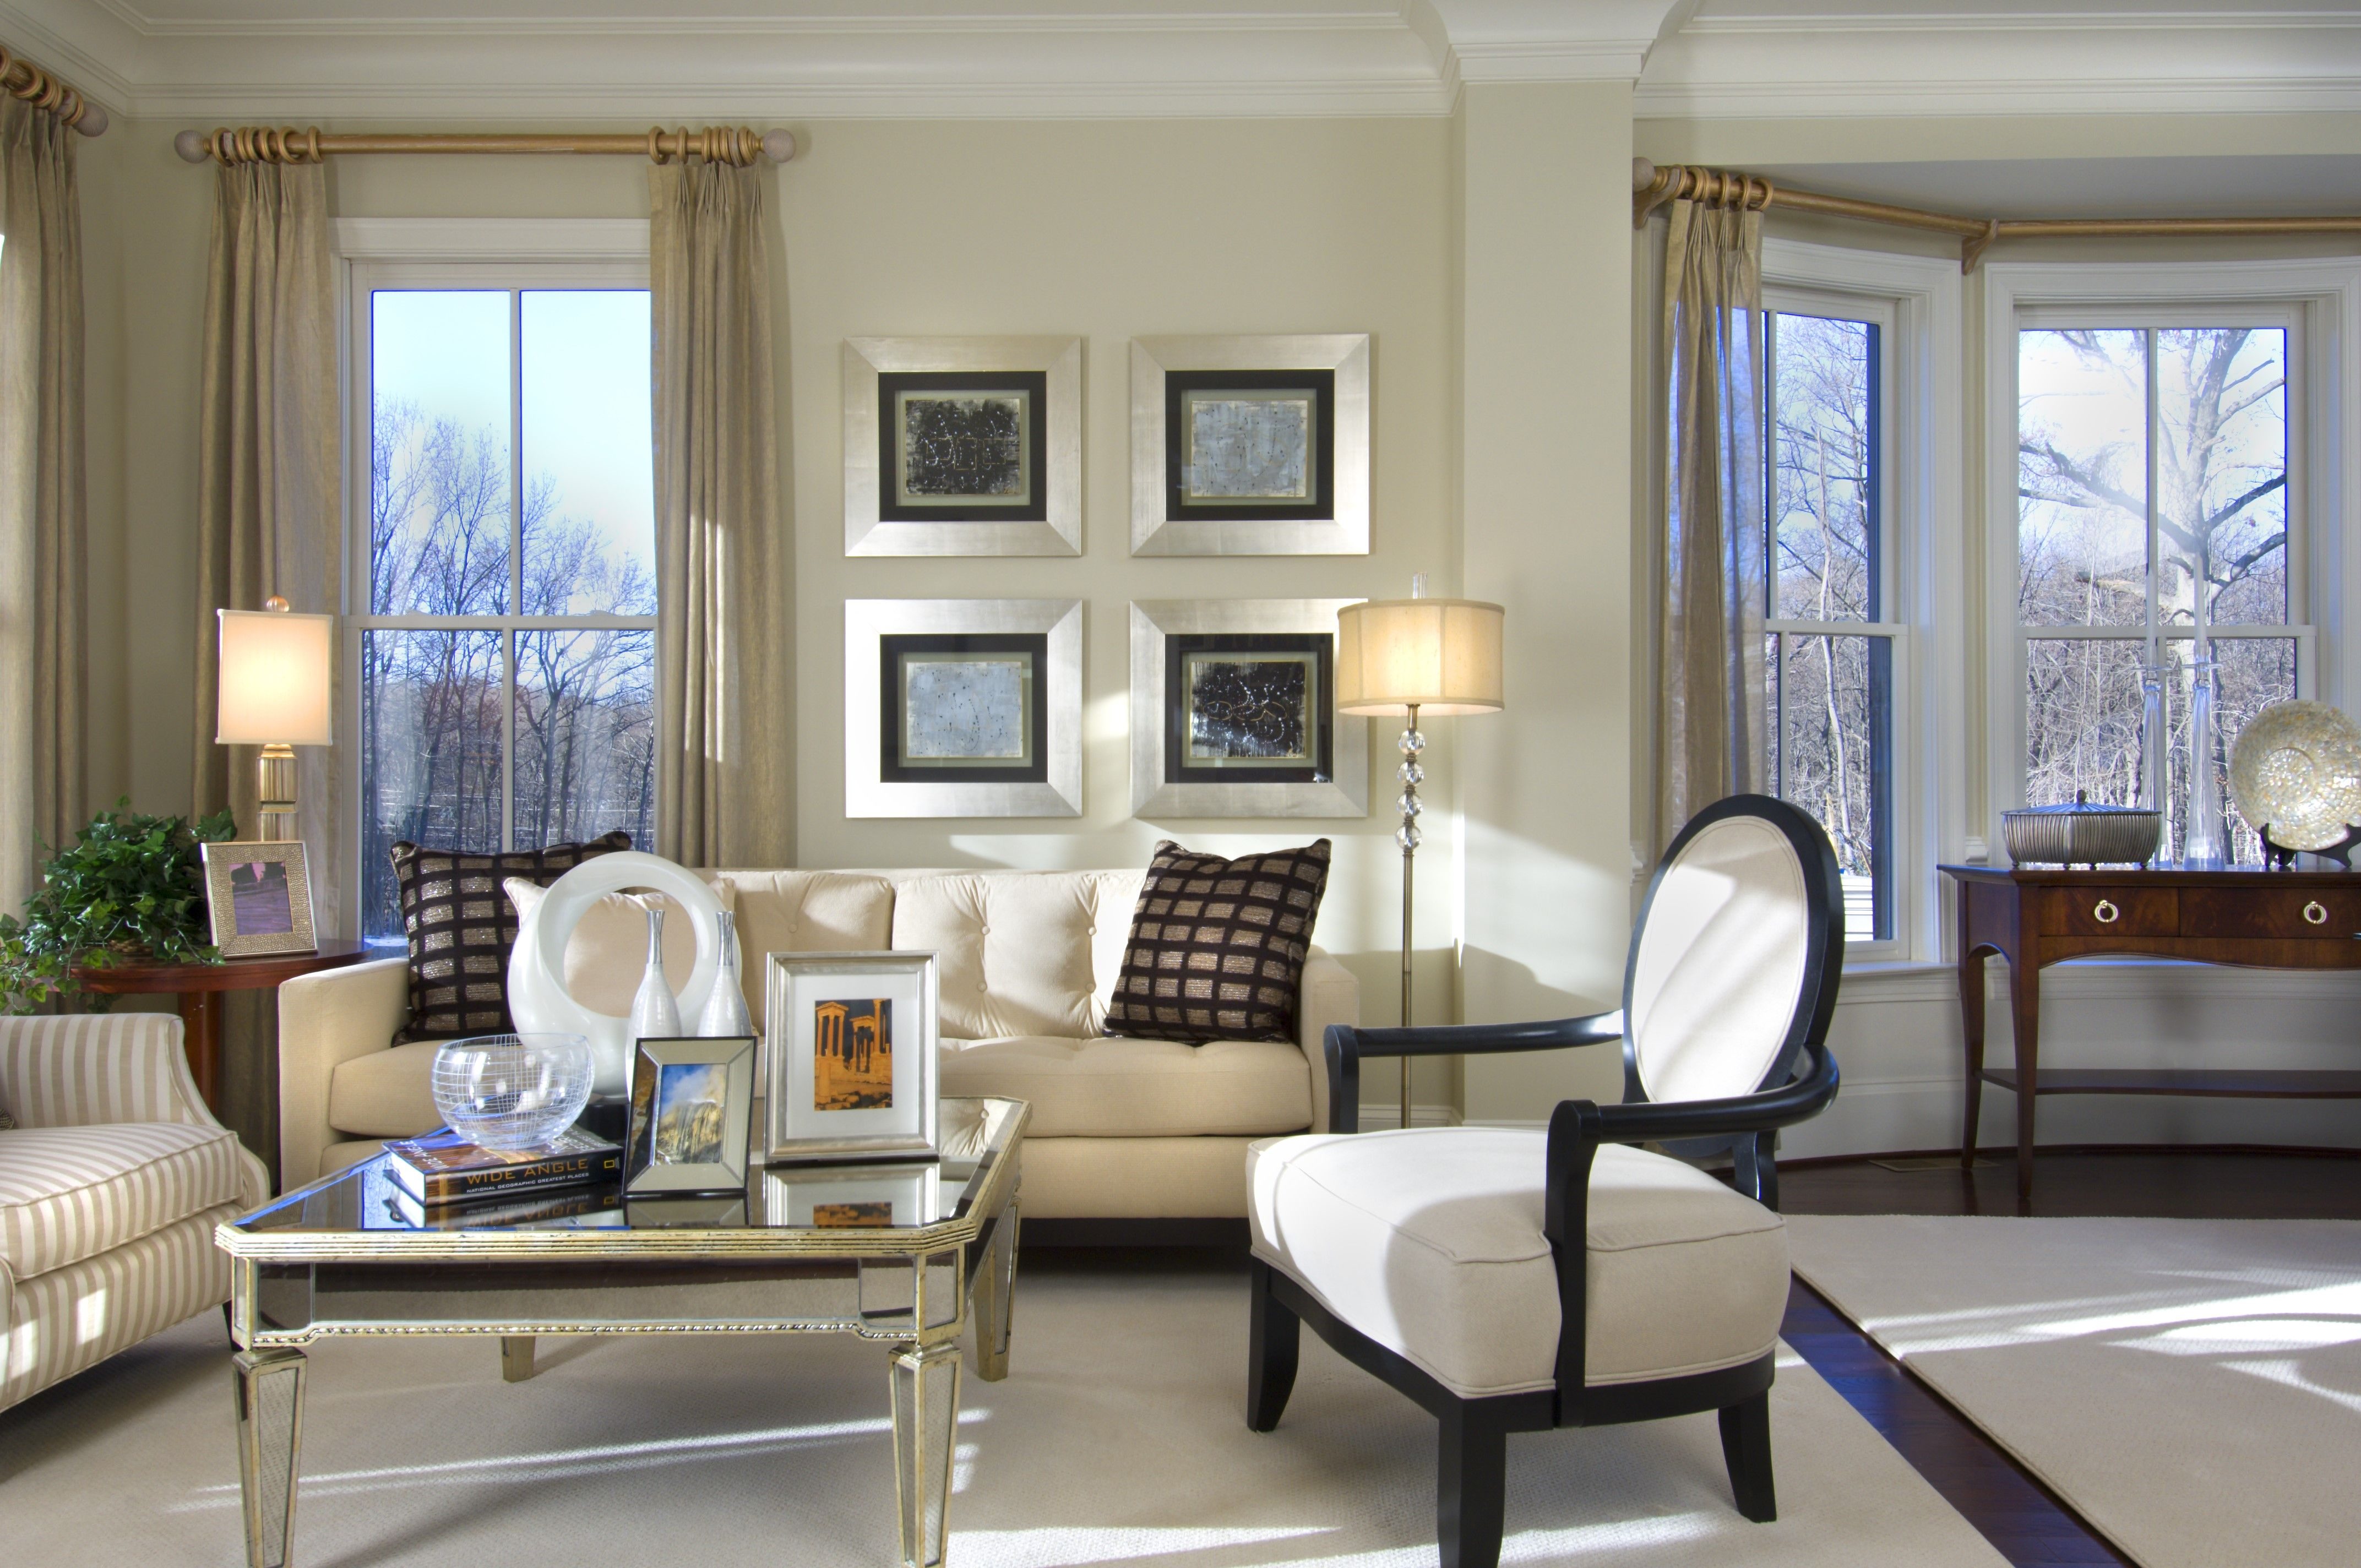 Traditional Contemporary Fusion Living Room With Black And White Color Scheme Pale Gold Accents